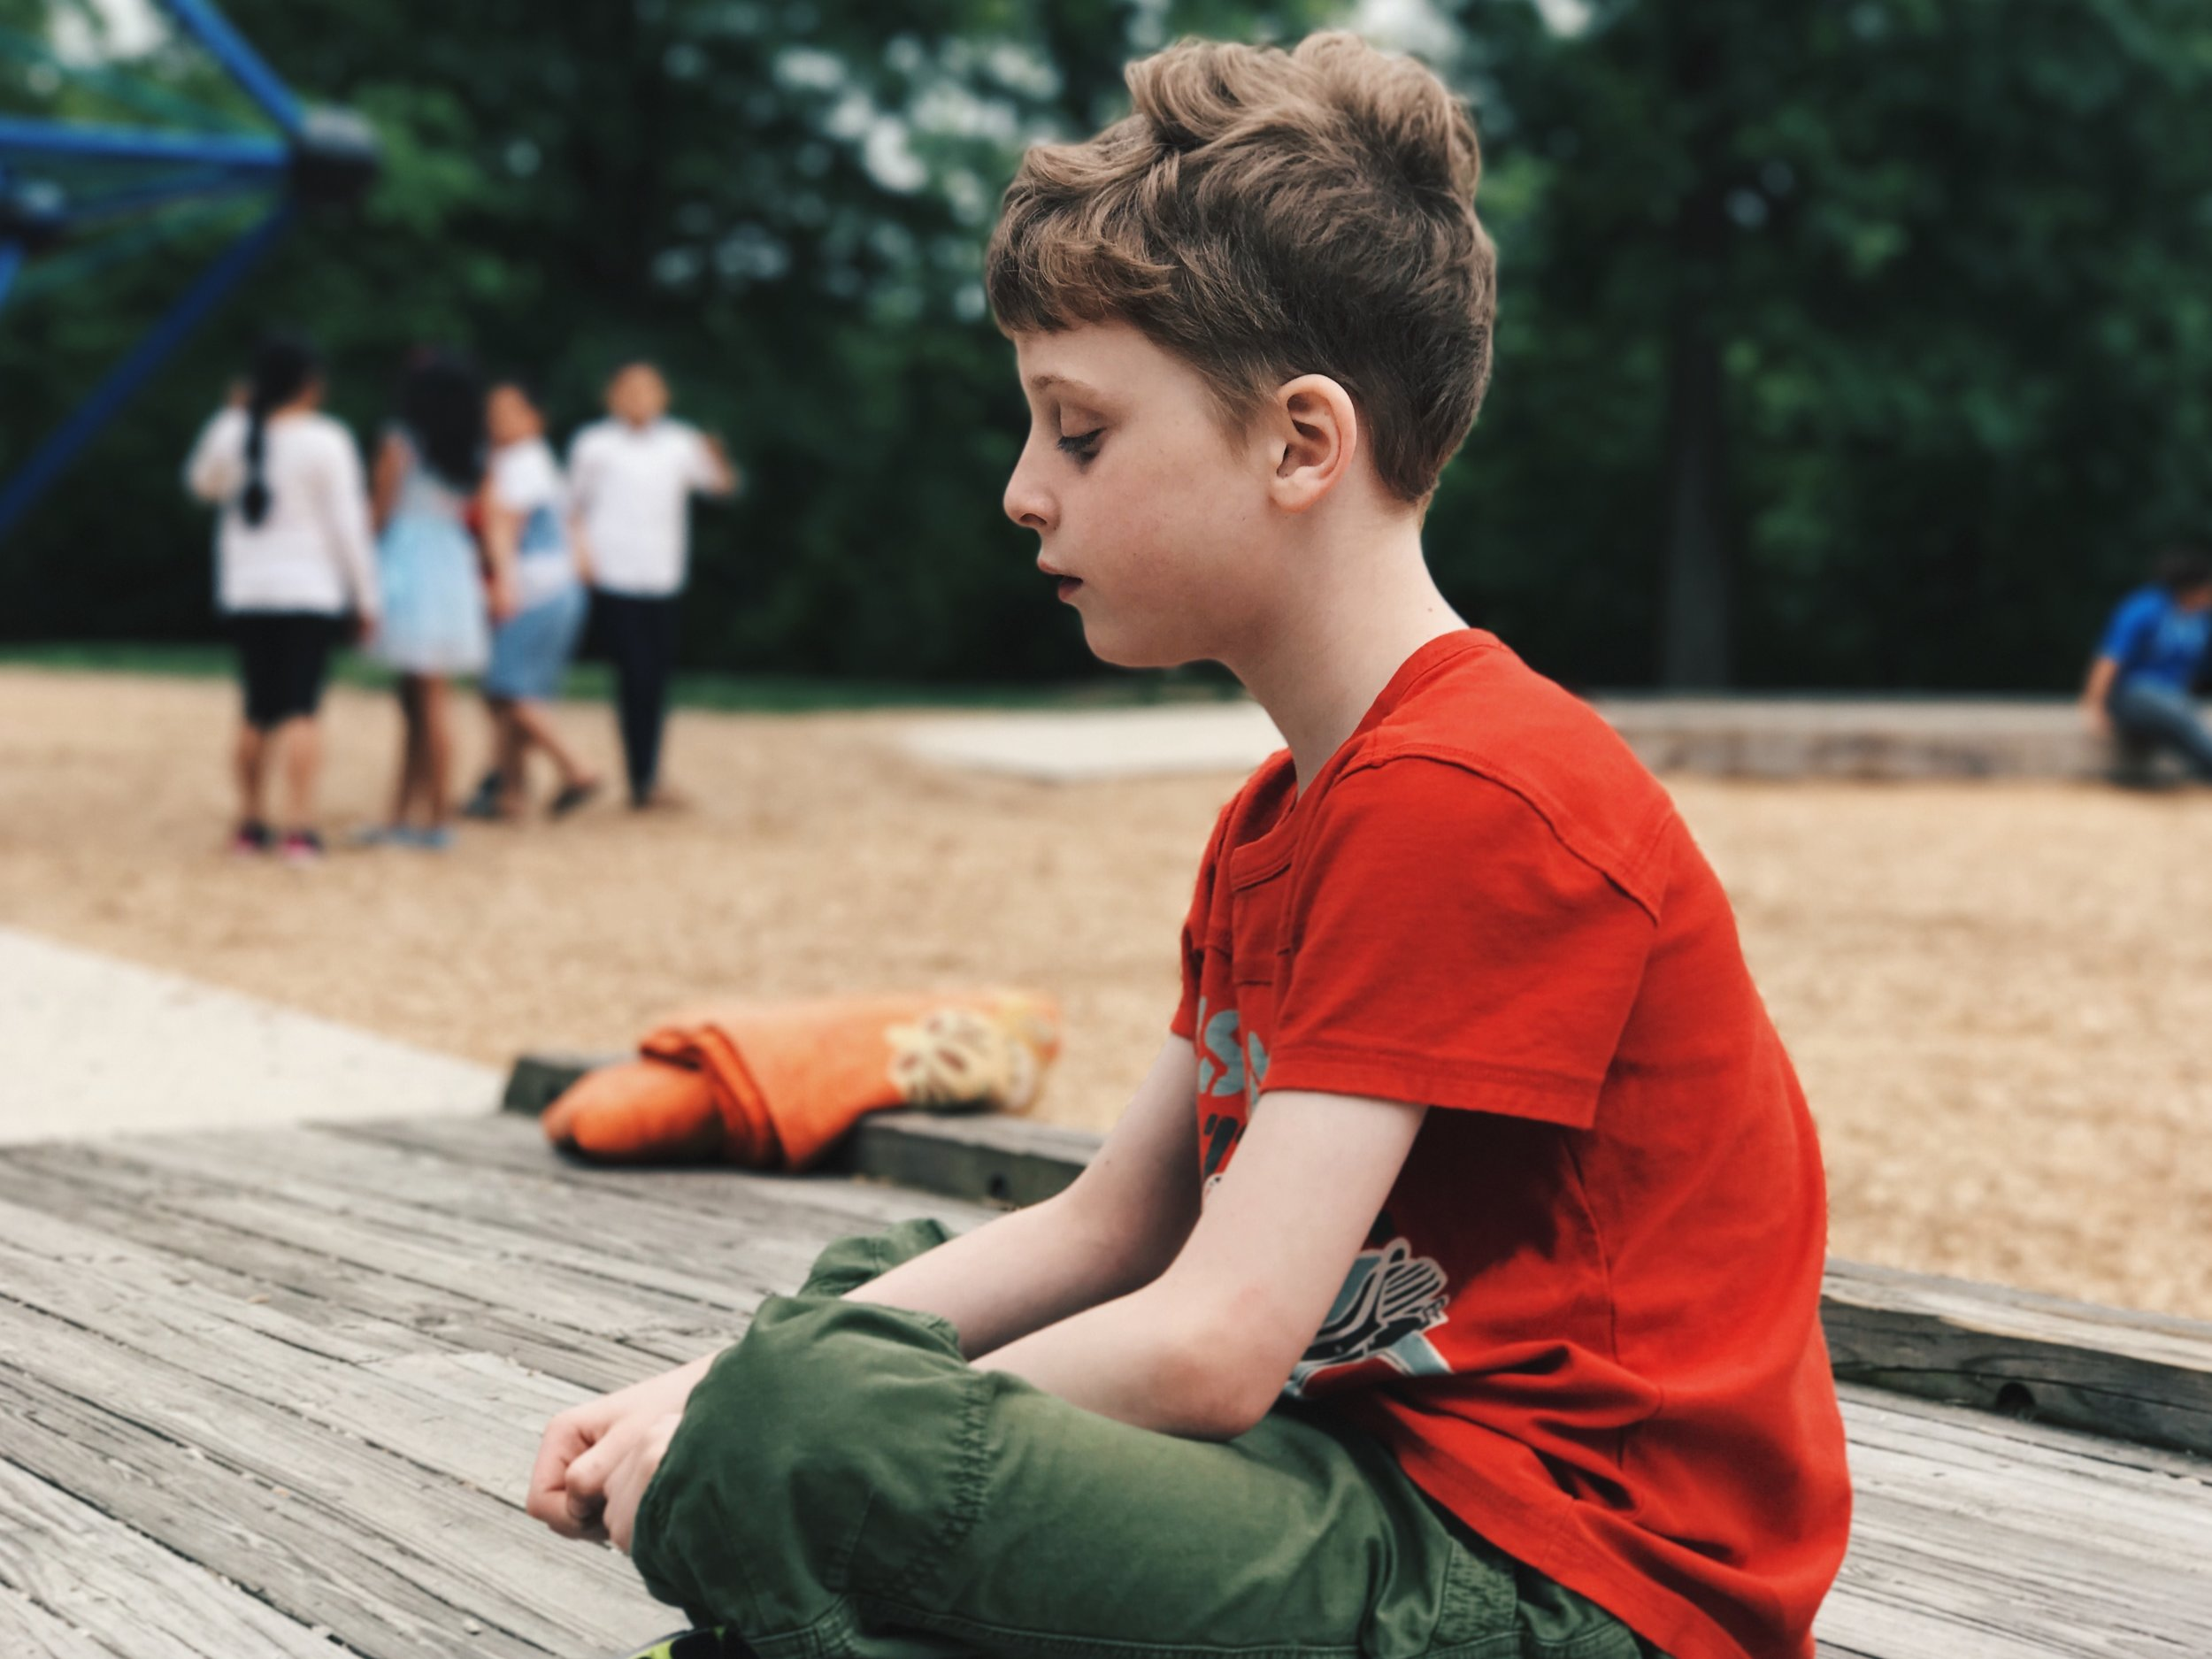 A young autistic boy sits quietly while children in the background gaze at him.